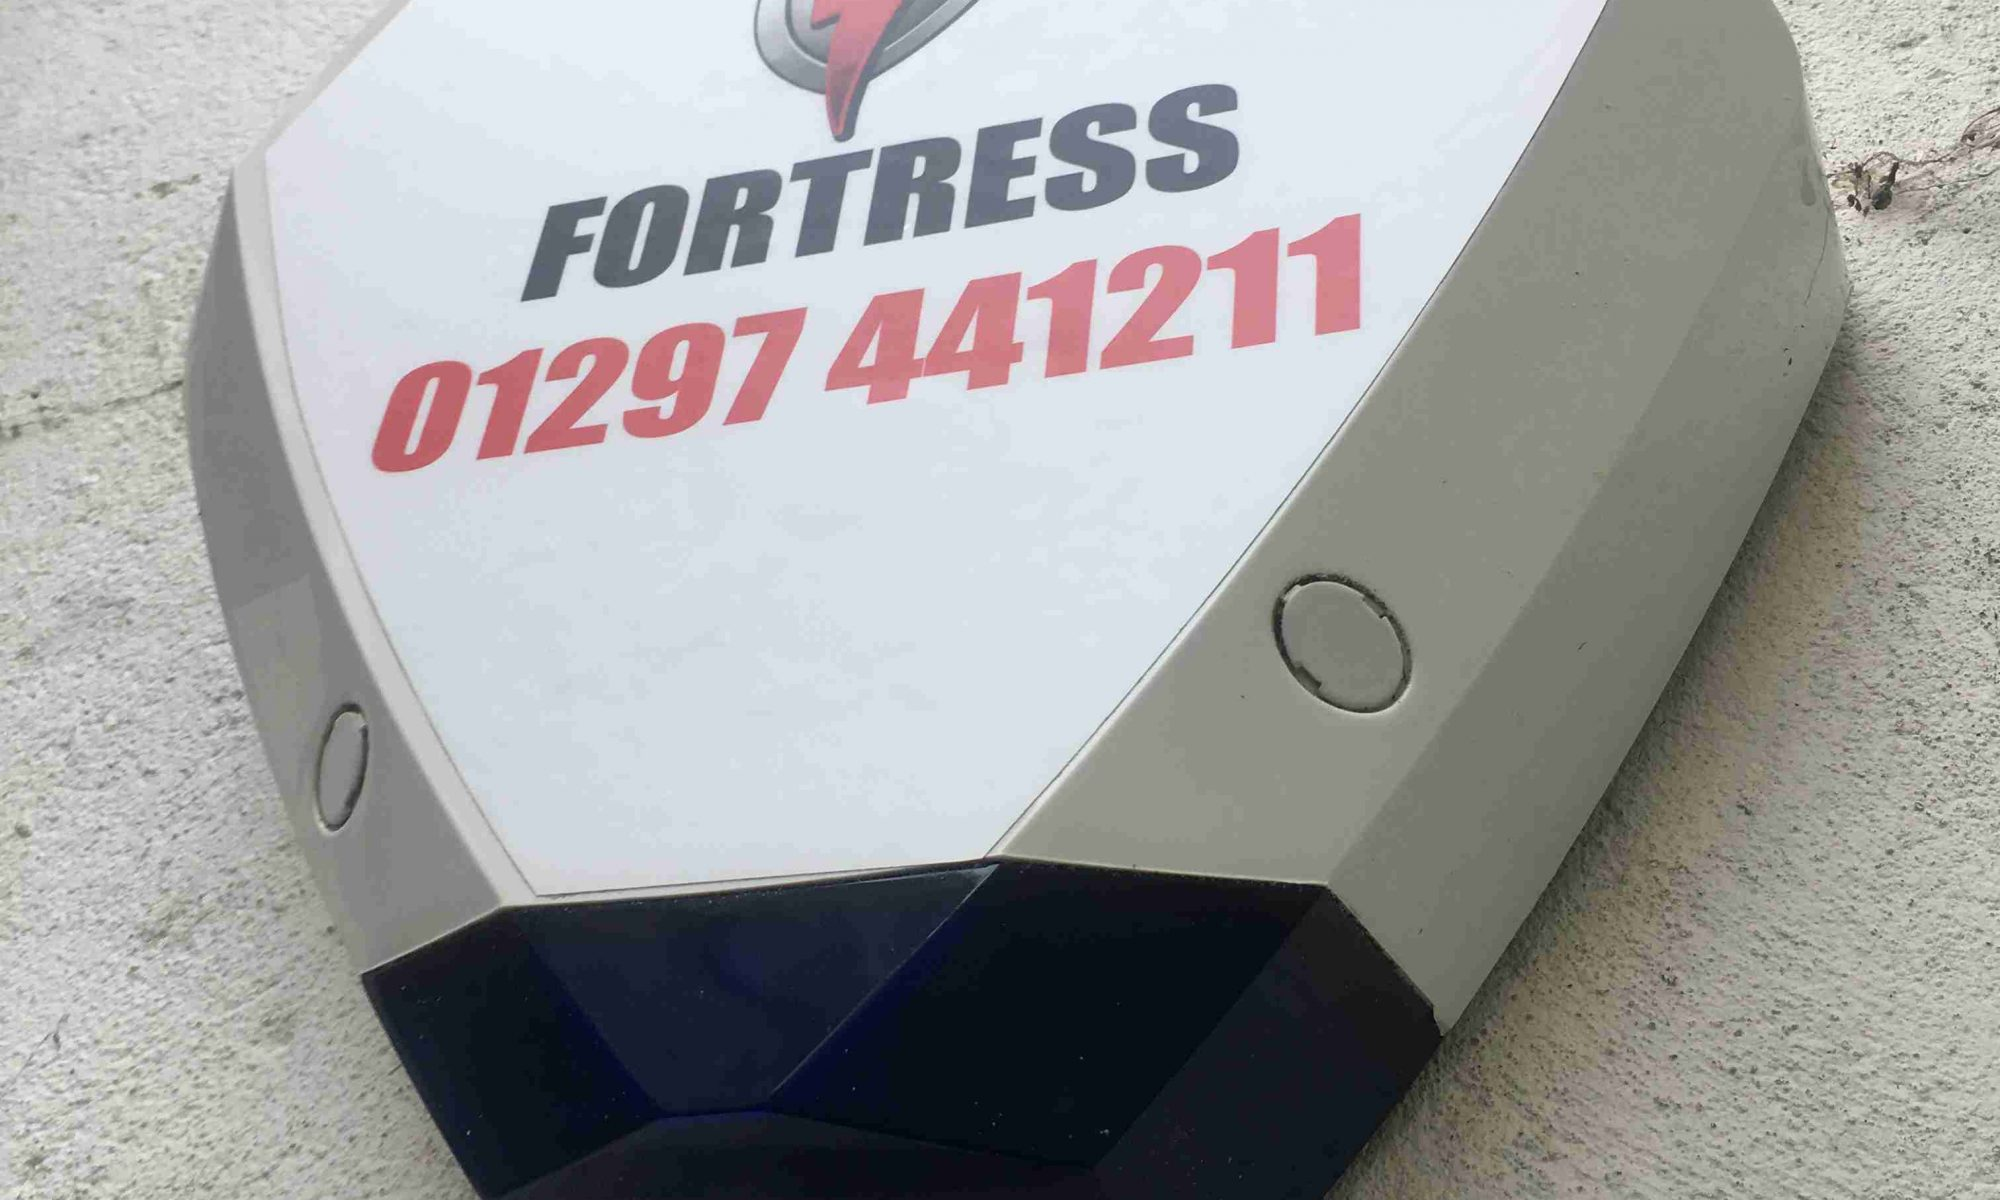 Fortress Security Alarm